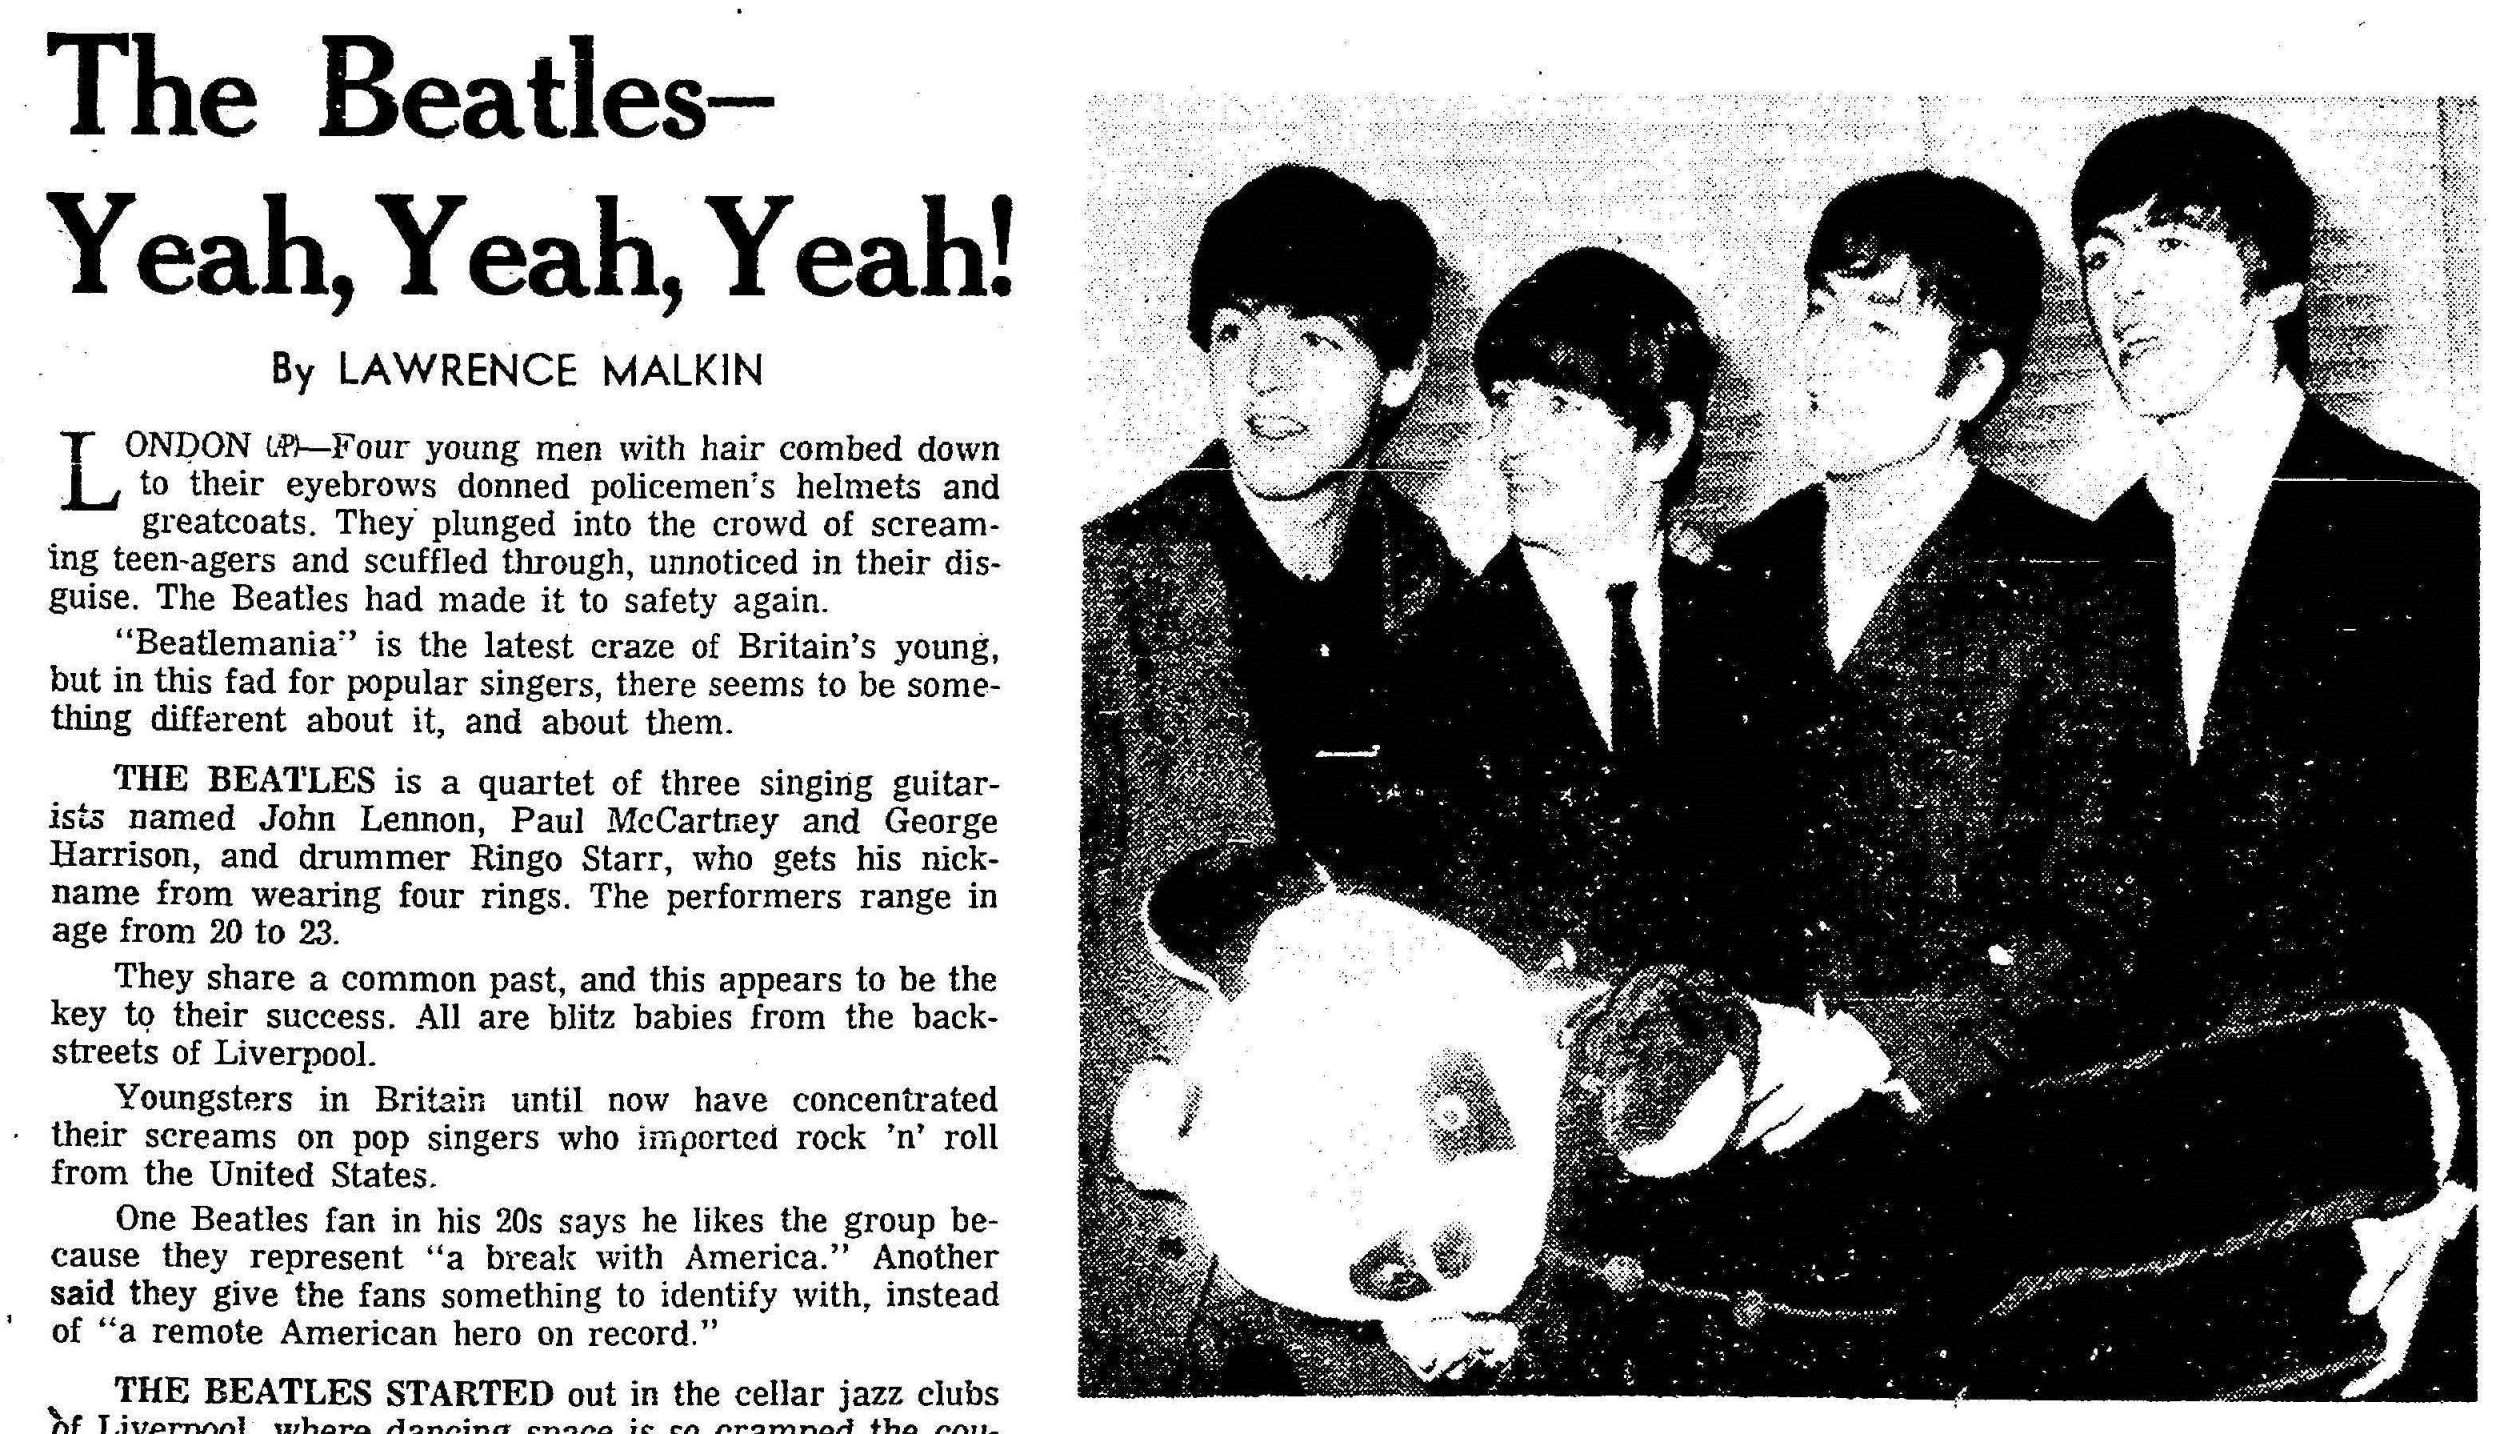 (From the Cleveland Plain Dealer, 29 December 1963. Click to open full article.)